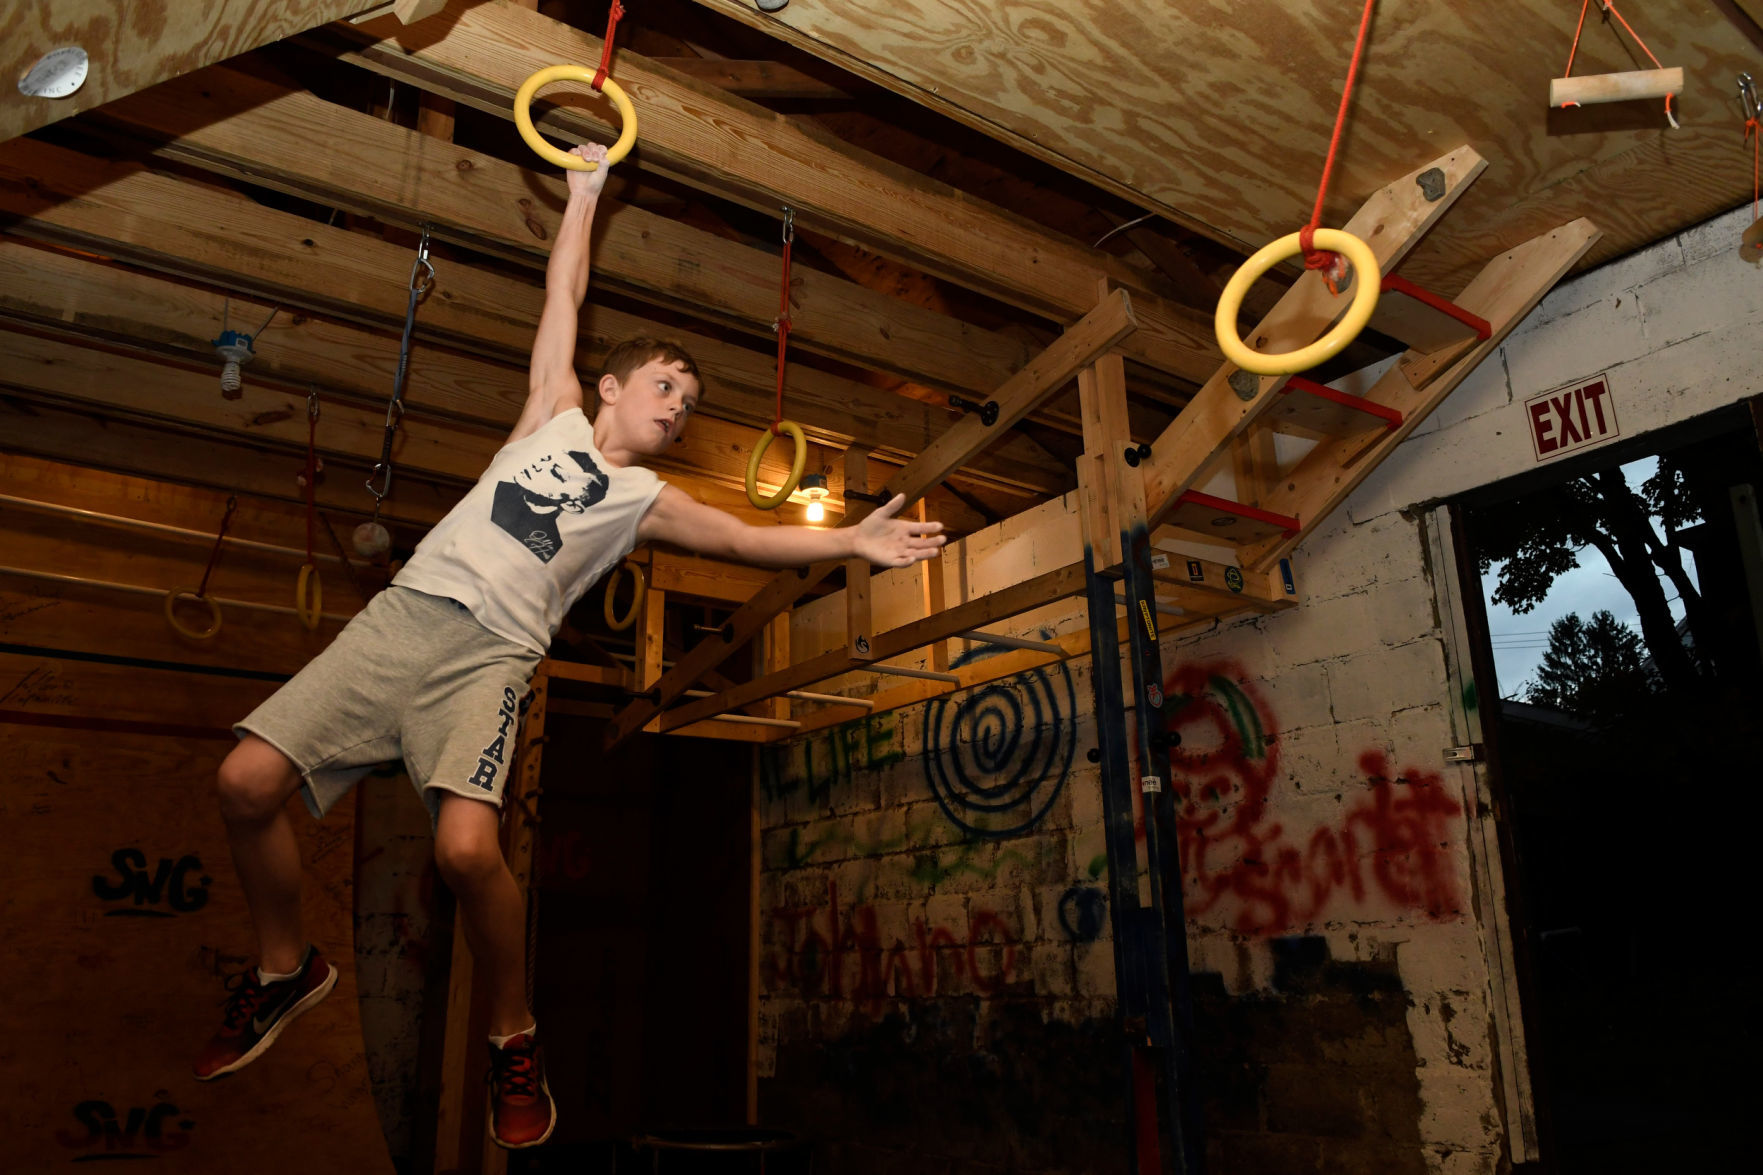 Garage Gym Warrior Saratoga Springs Boy 9 To Compete On American Ninja Warrior